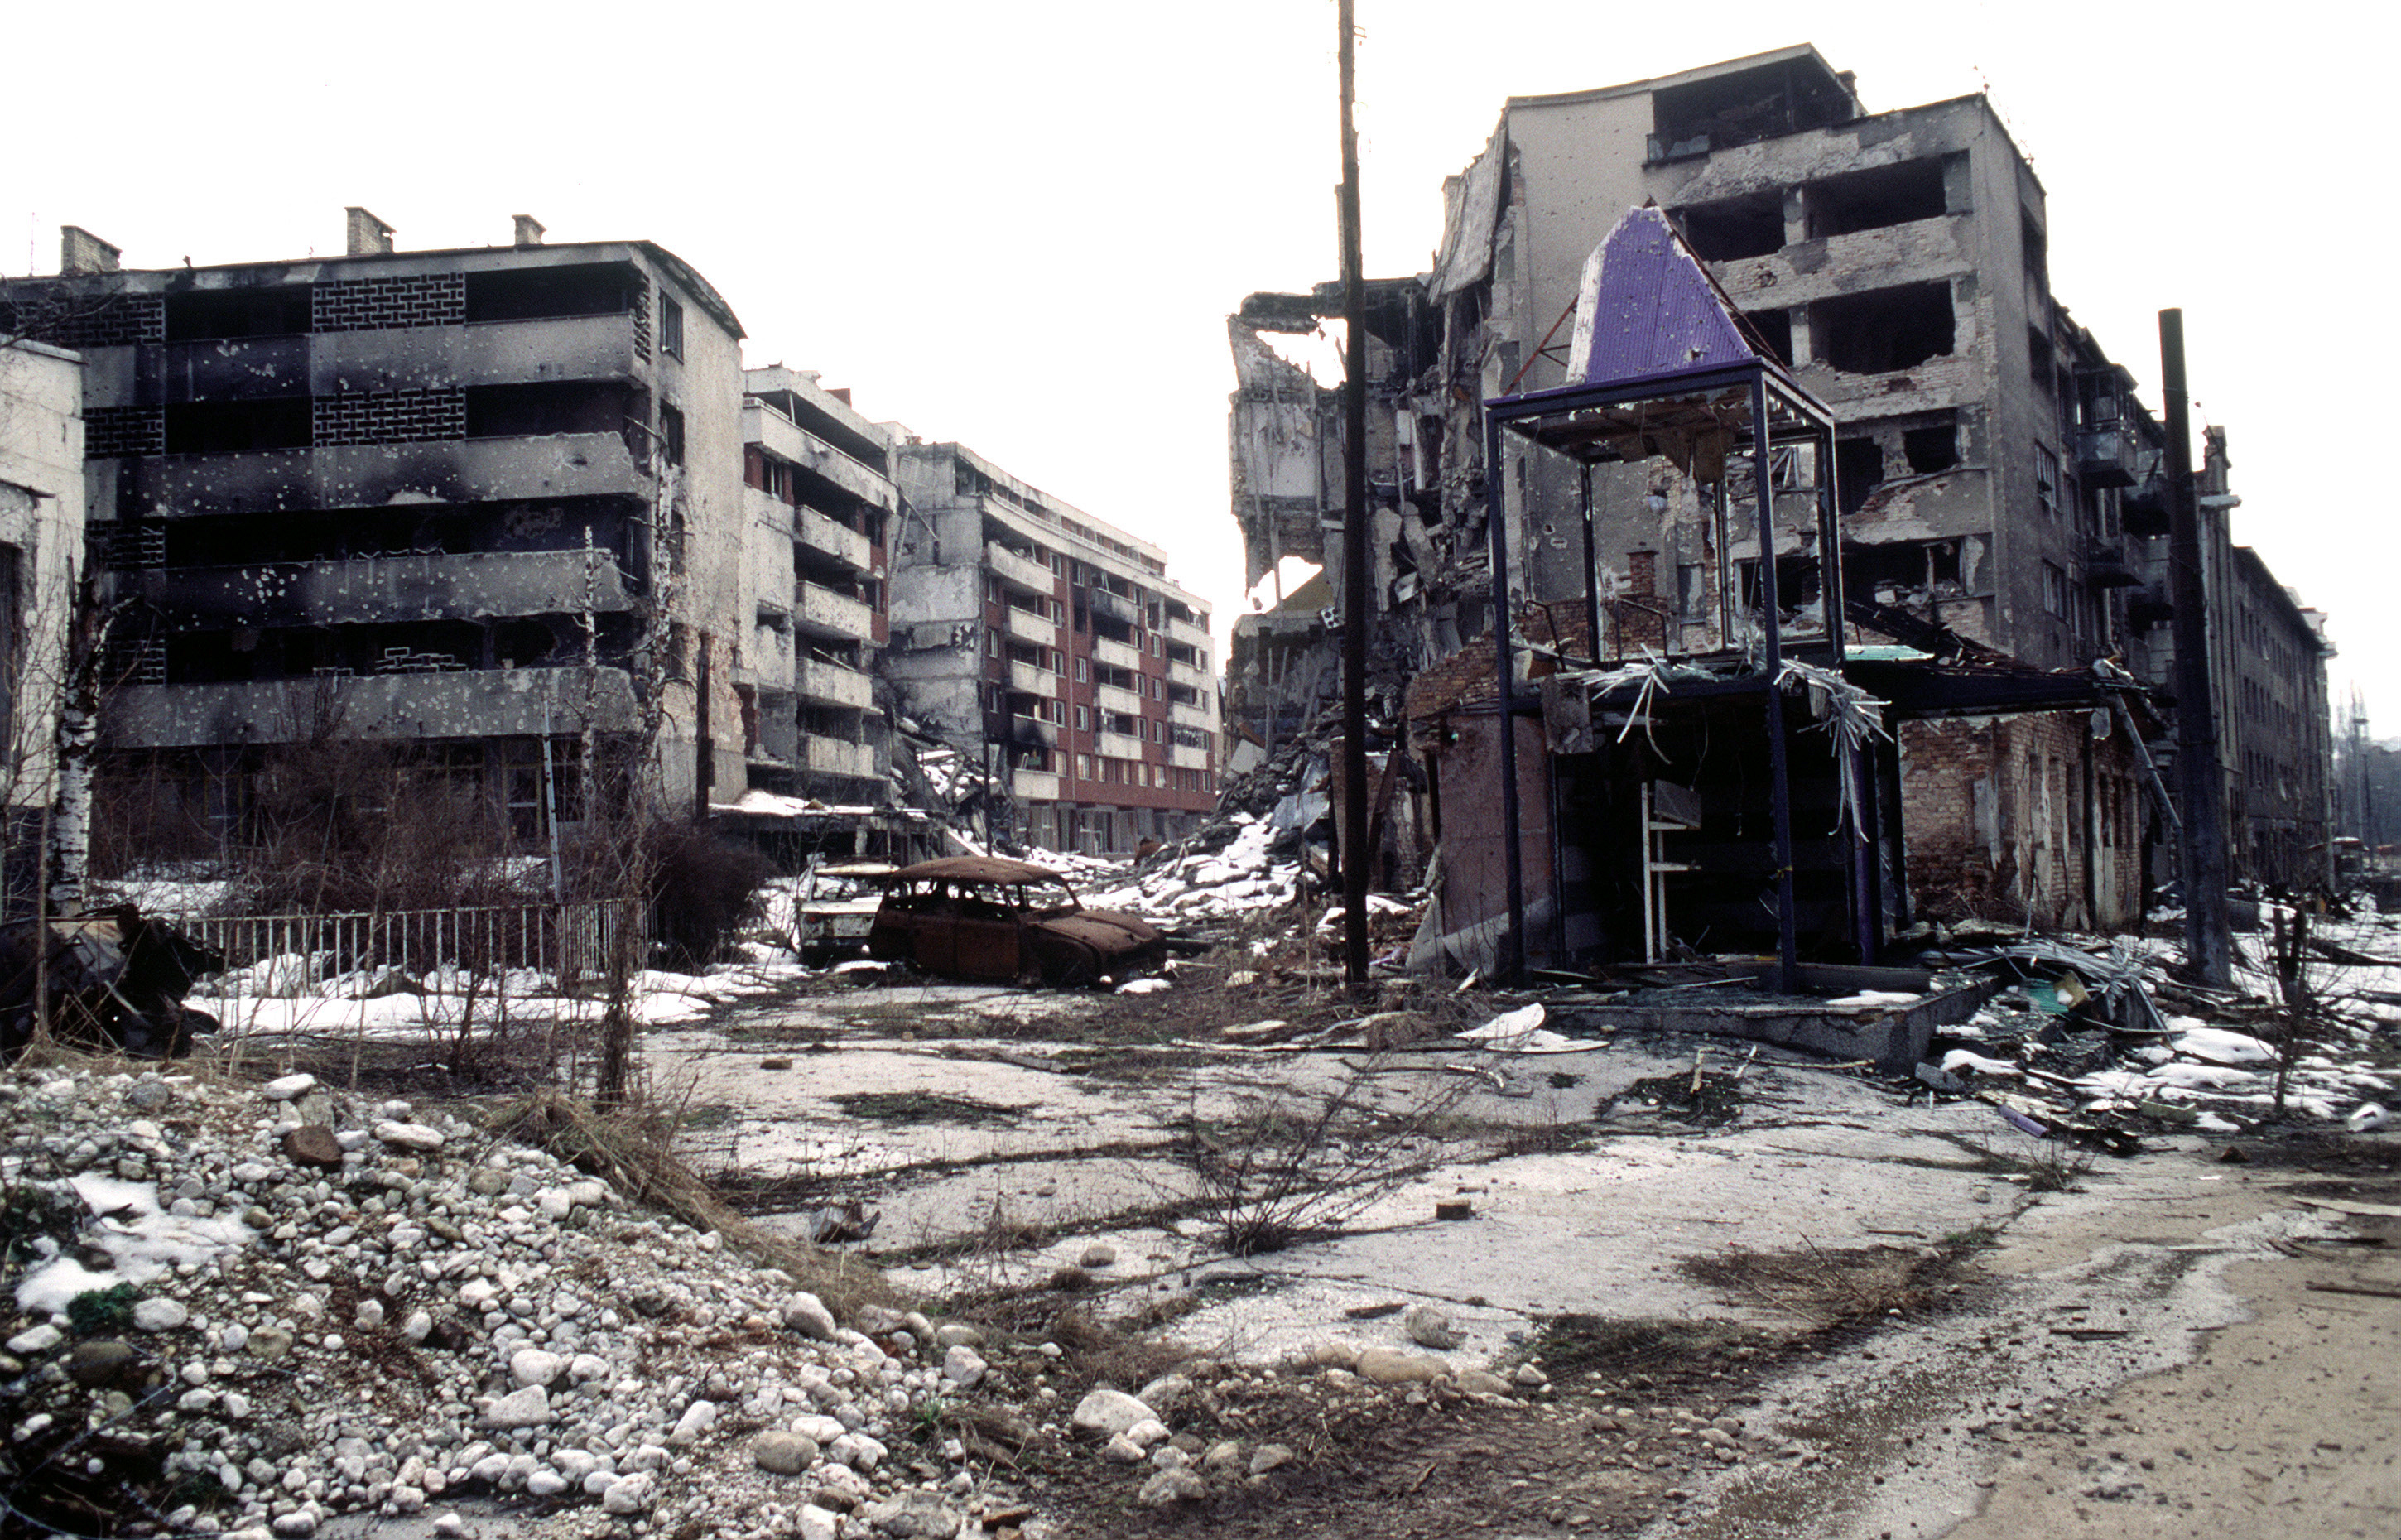 Sarajevo during the Bosnian War